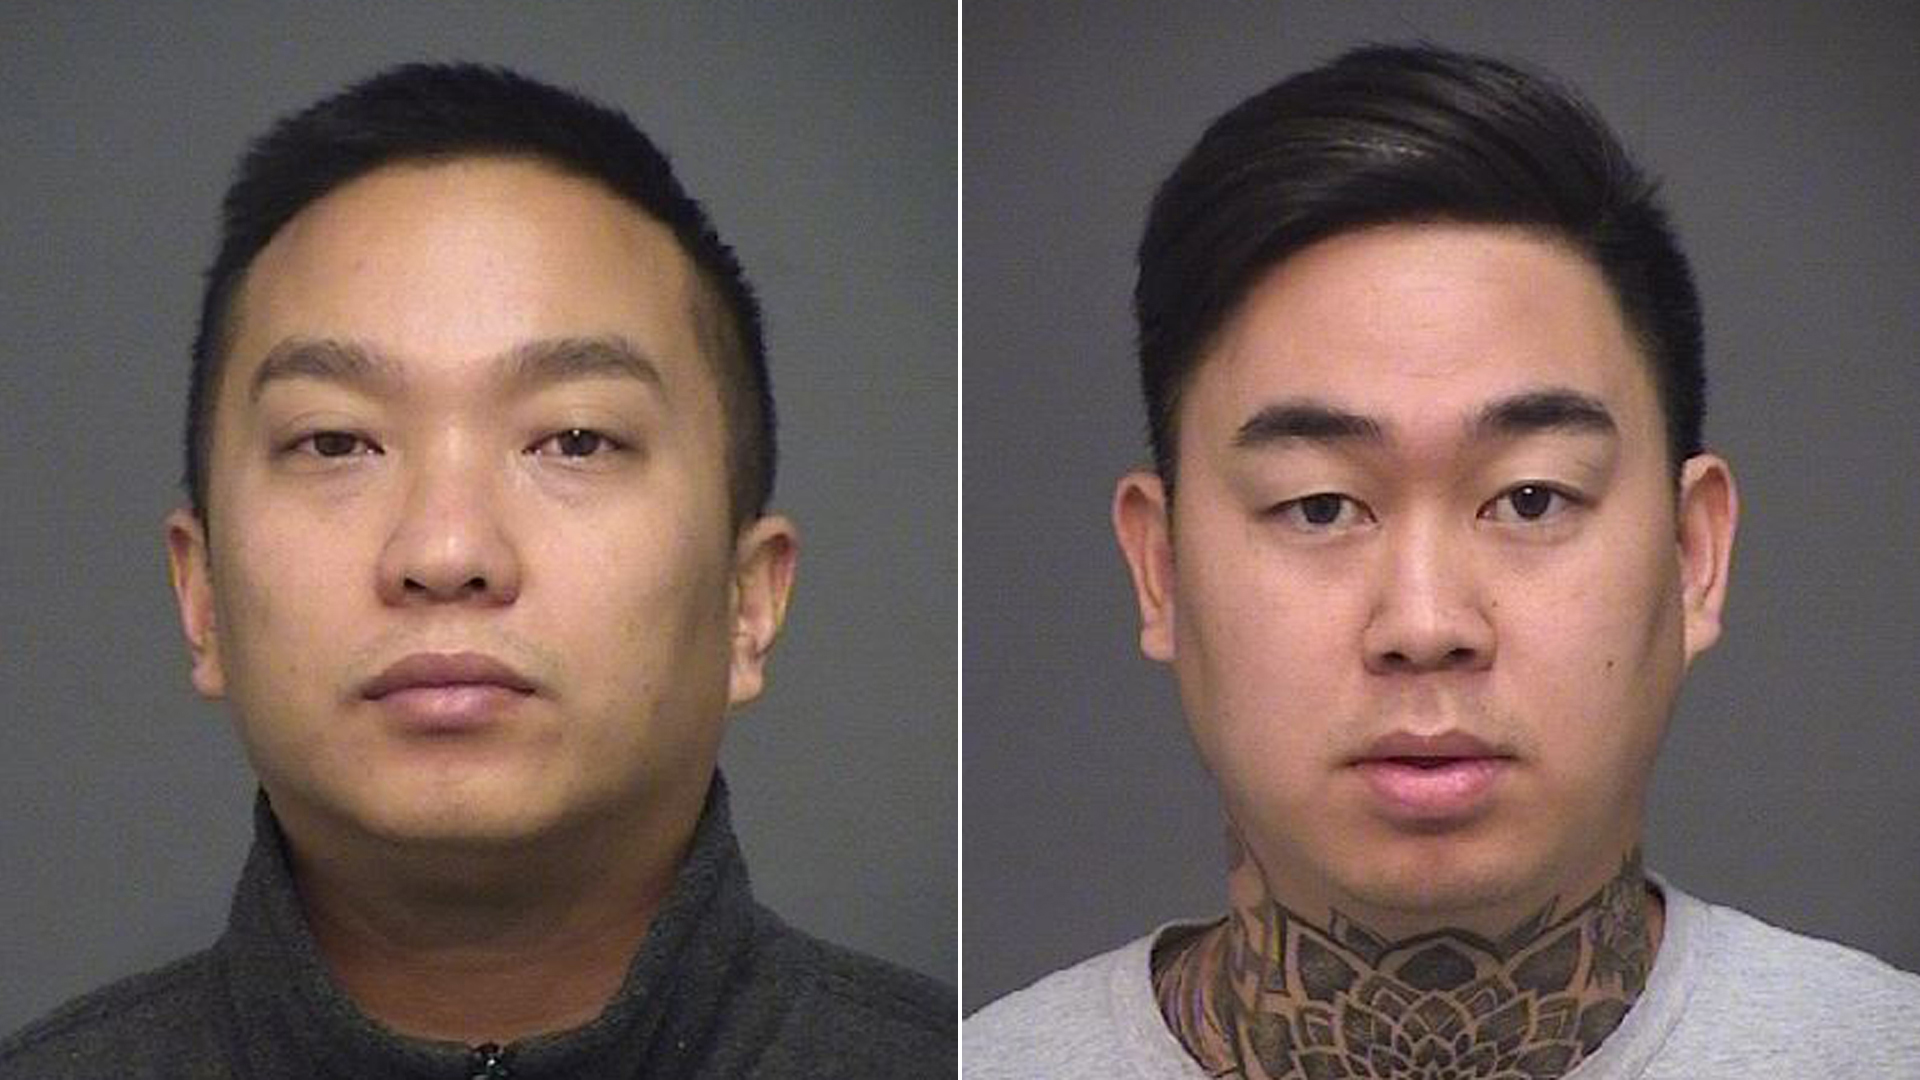 Dennis Dang, 29, of Westminster (left) and Casey Ngo, 31, of Midway City, pictured in photos released by the Huntington Beach Police Department on Oct. 23, 2019.